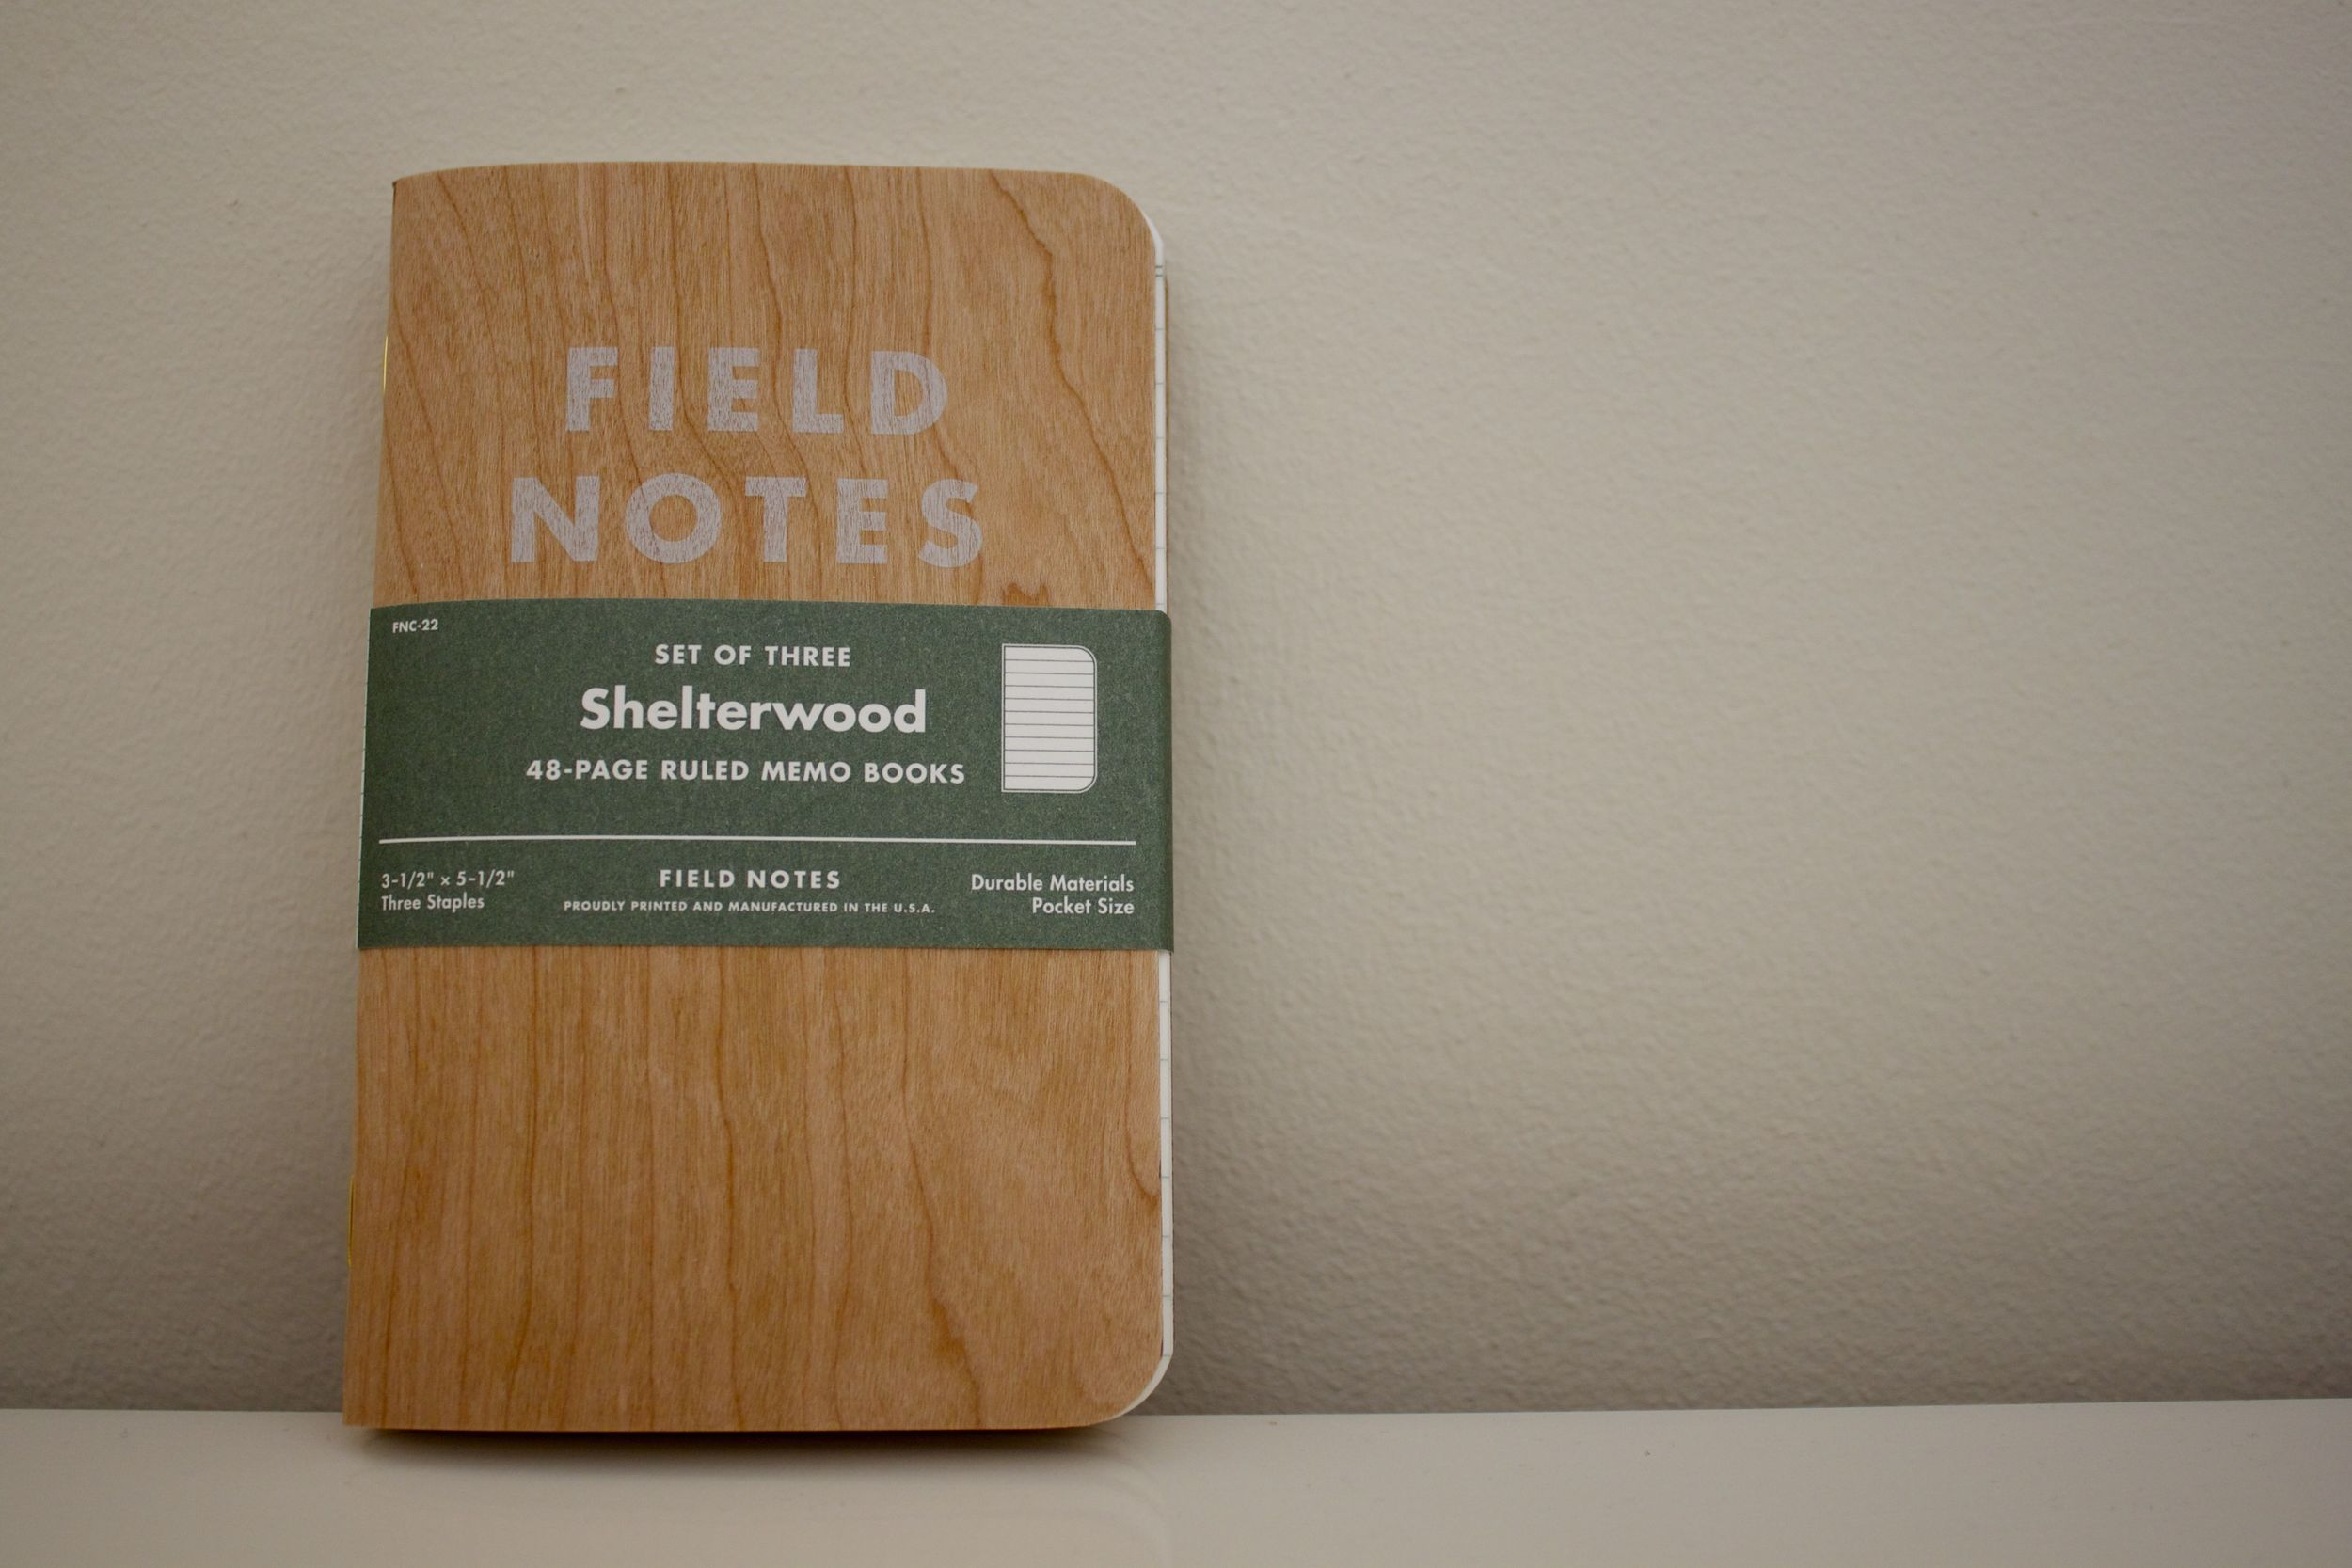 Field notes with belly band